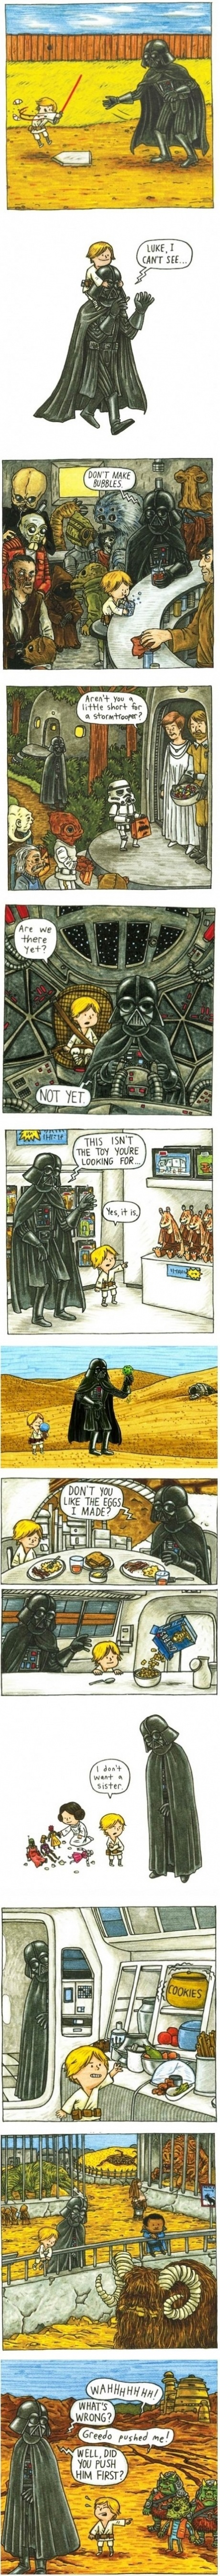 Hahaha if darth had to raise luke haha funny comic well done